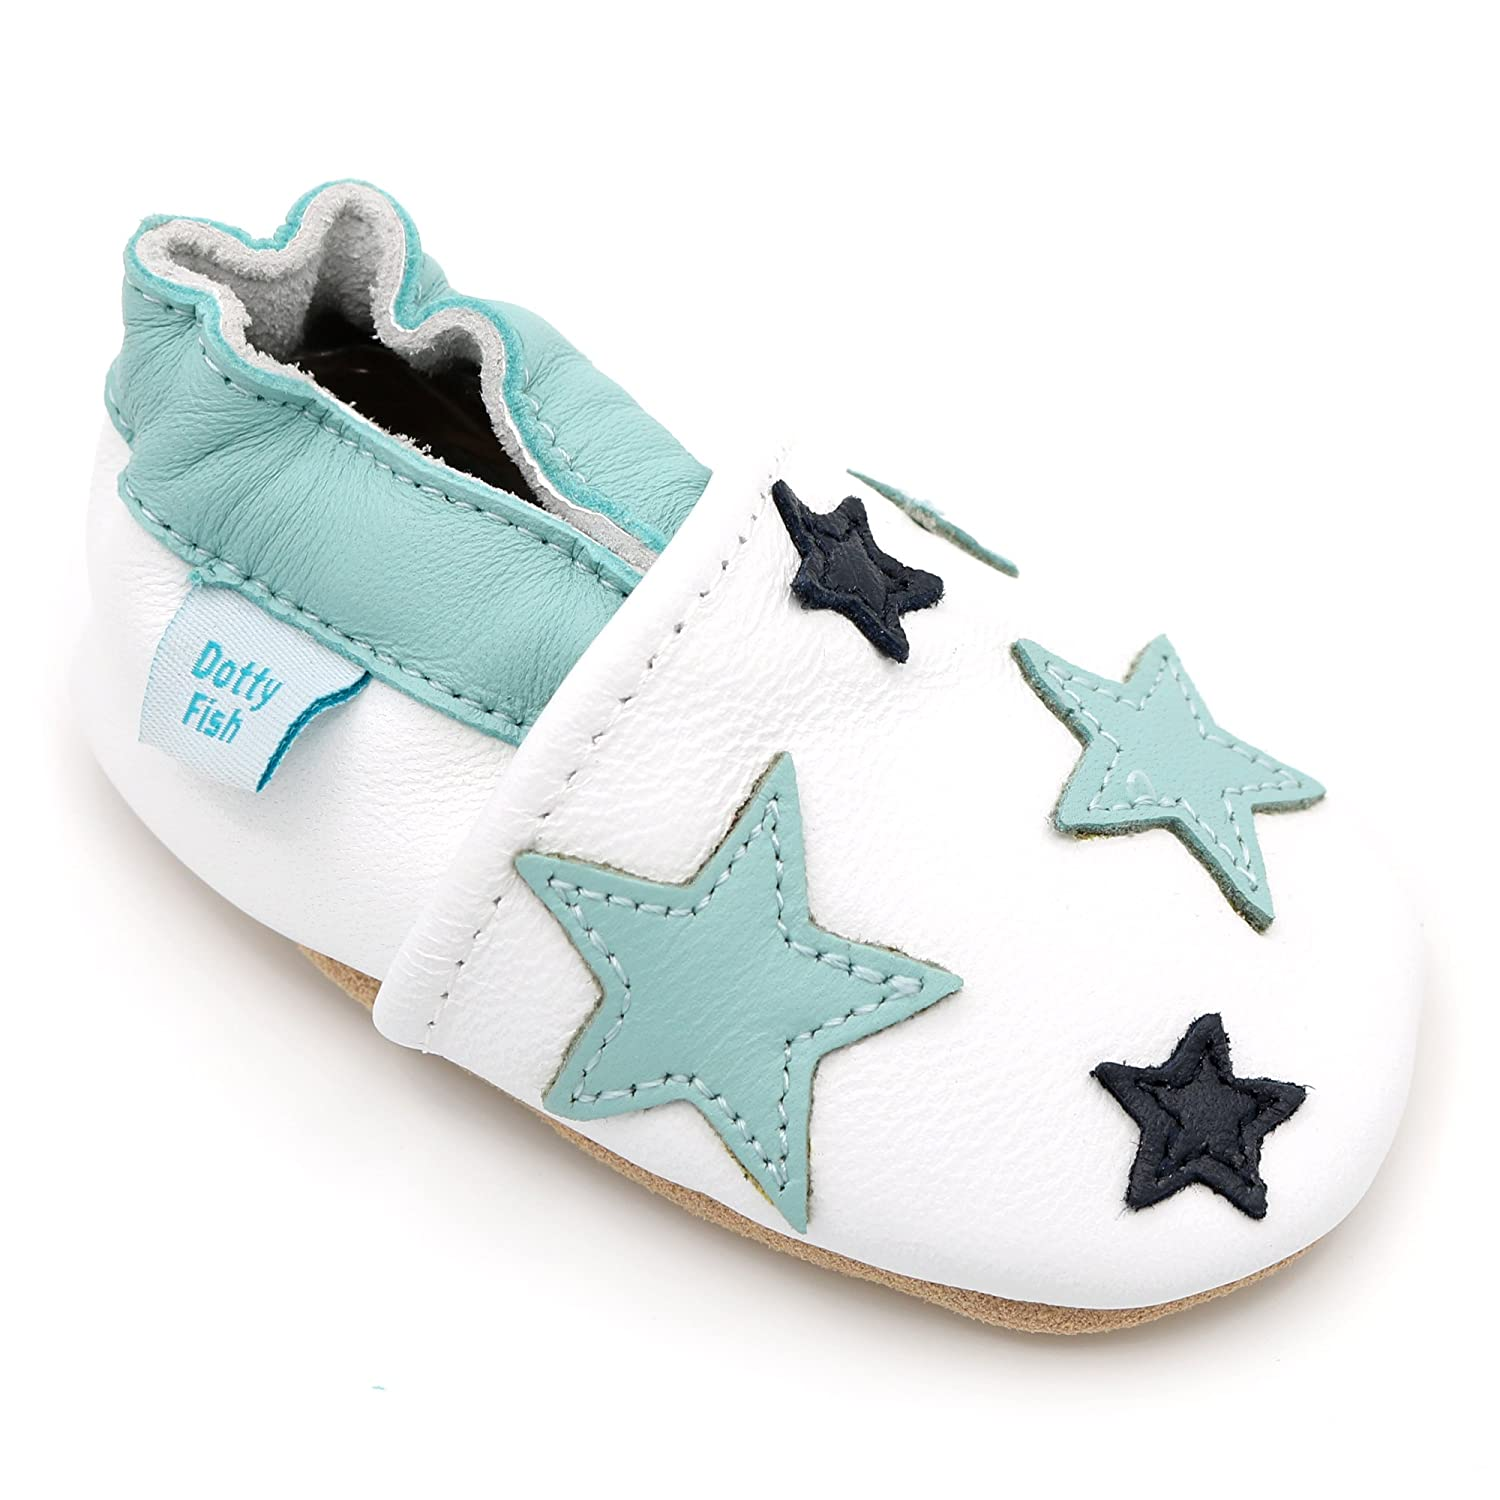 Dotty Fish Soft Leather Baby Shoes. Toddler Shoes. Boys Girls. Twinkle Star Design. Newborn to 3-4 Years.